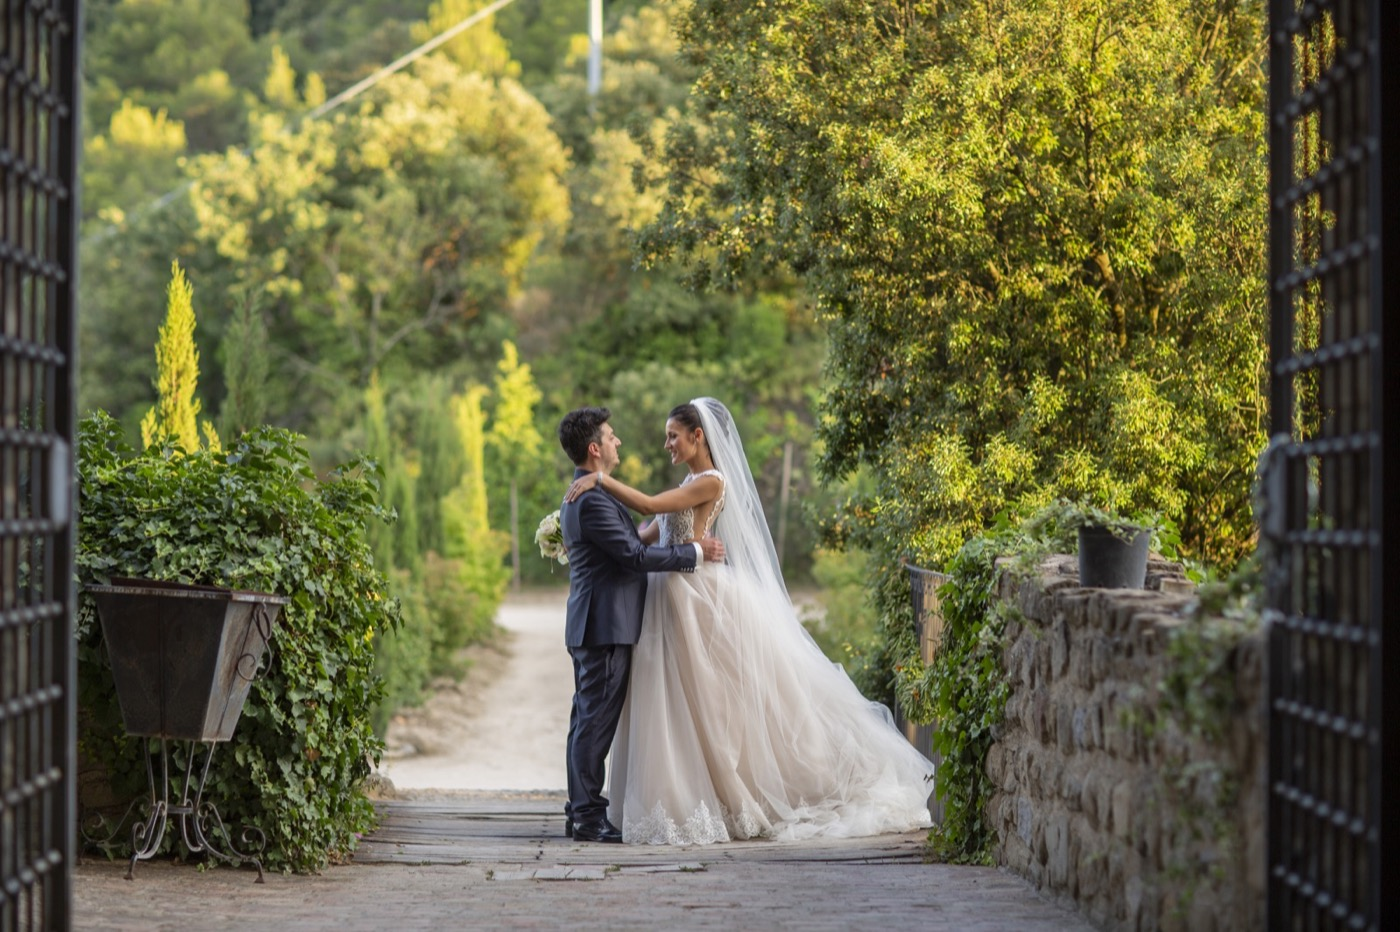 Claudio-Coppola-wedding-photographer-castello-rosciano-torgiano-56